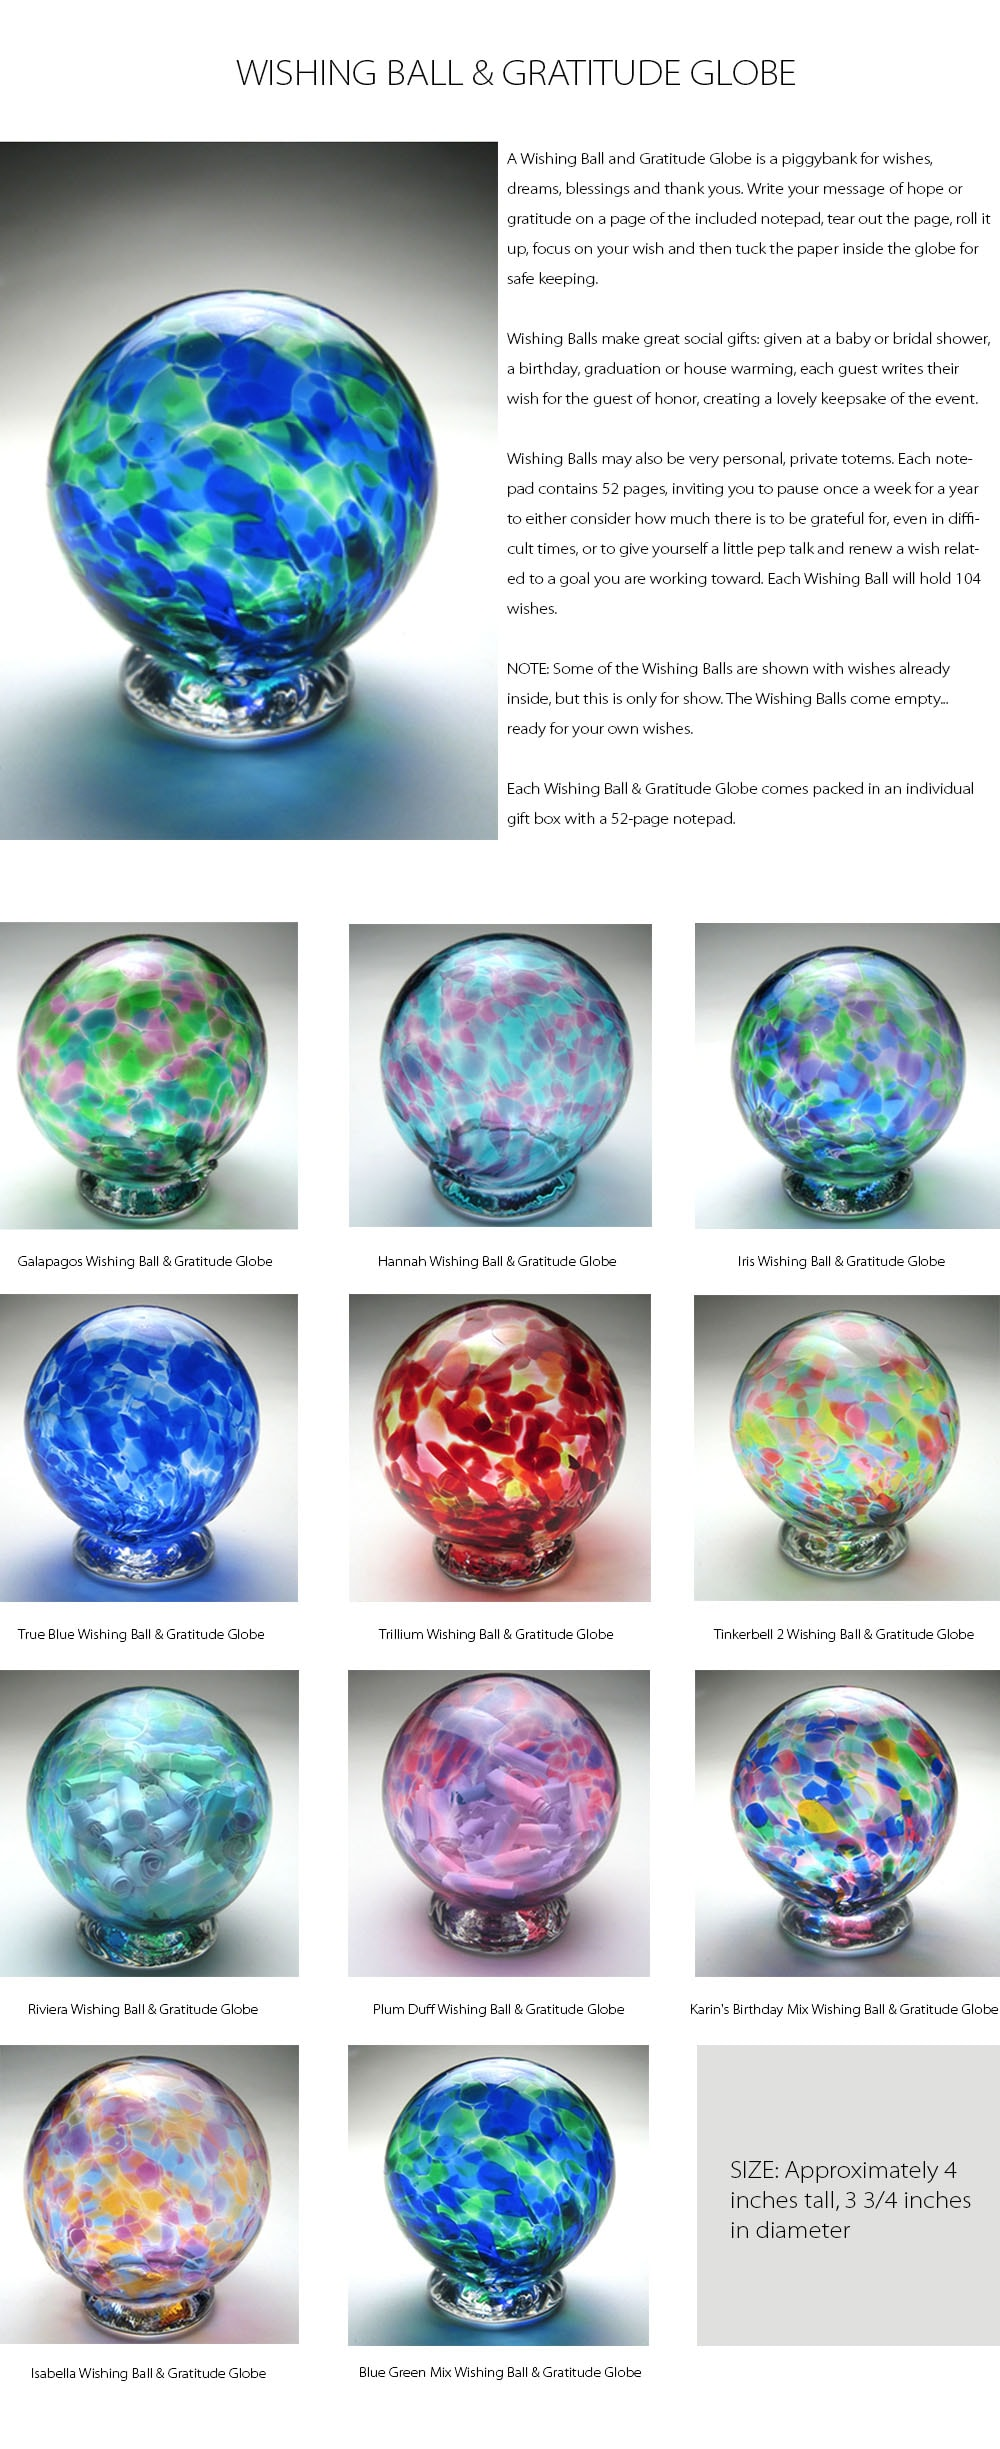 Wishing Ball And Gratitude Globe Wishes, Dreams, Blessings And Thank Yous